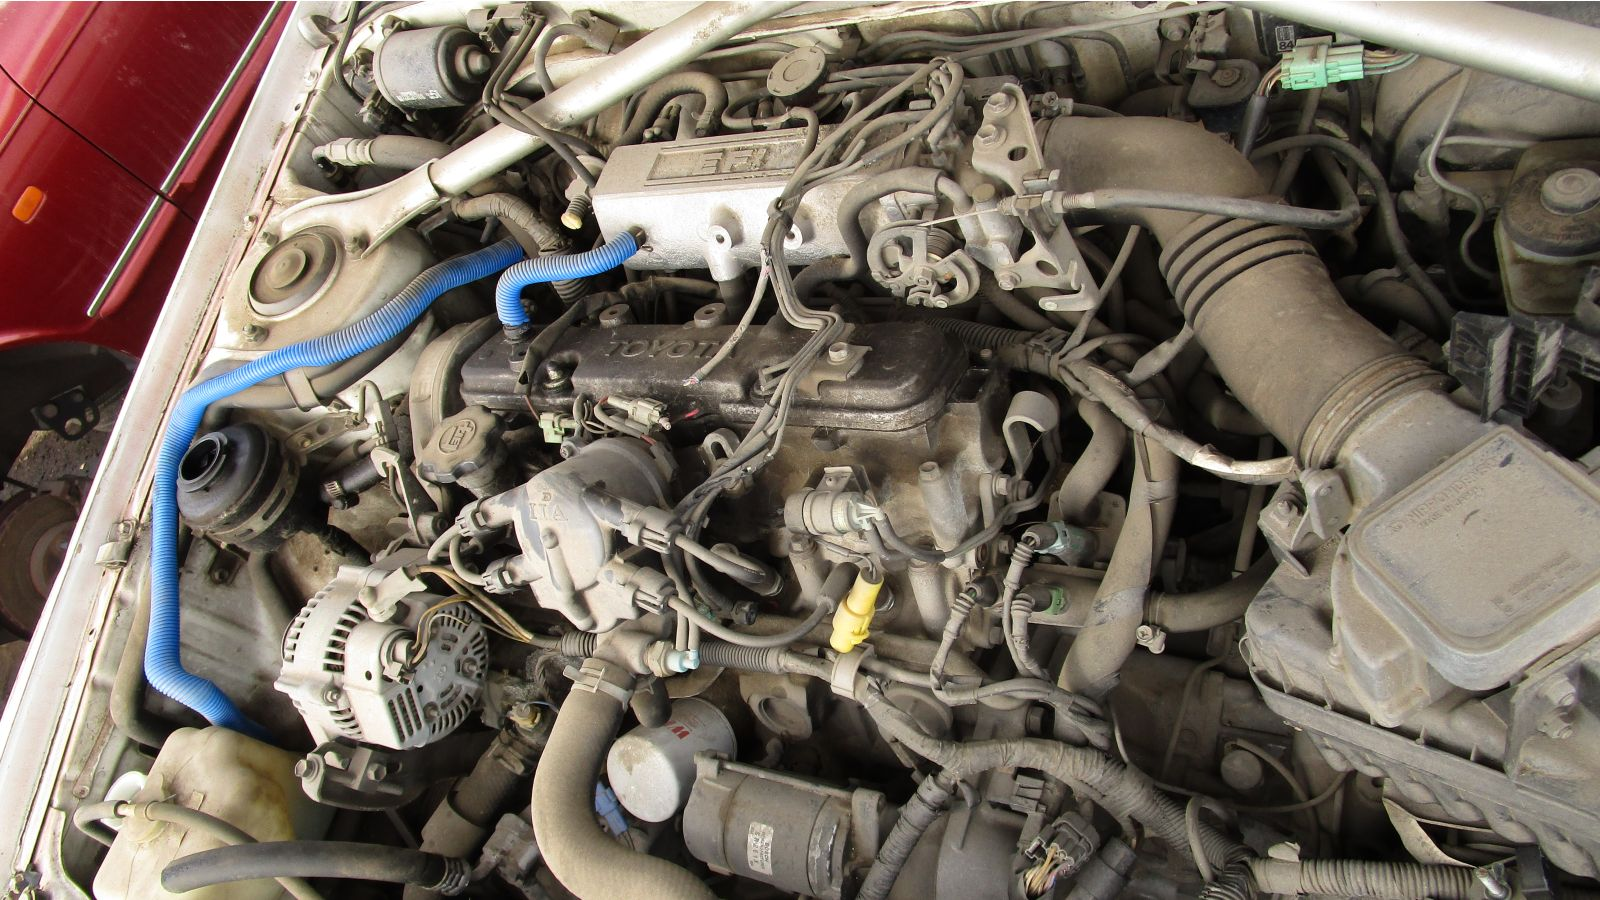 Junkyard Find: 1986 Toyota Celica GT Coupe - The Truth About Cars